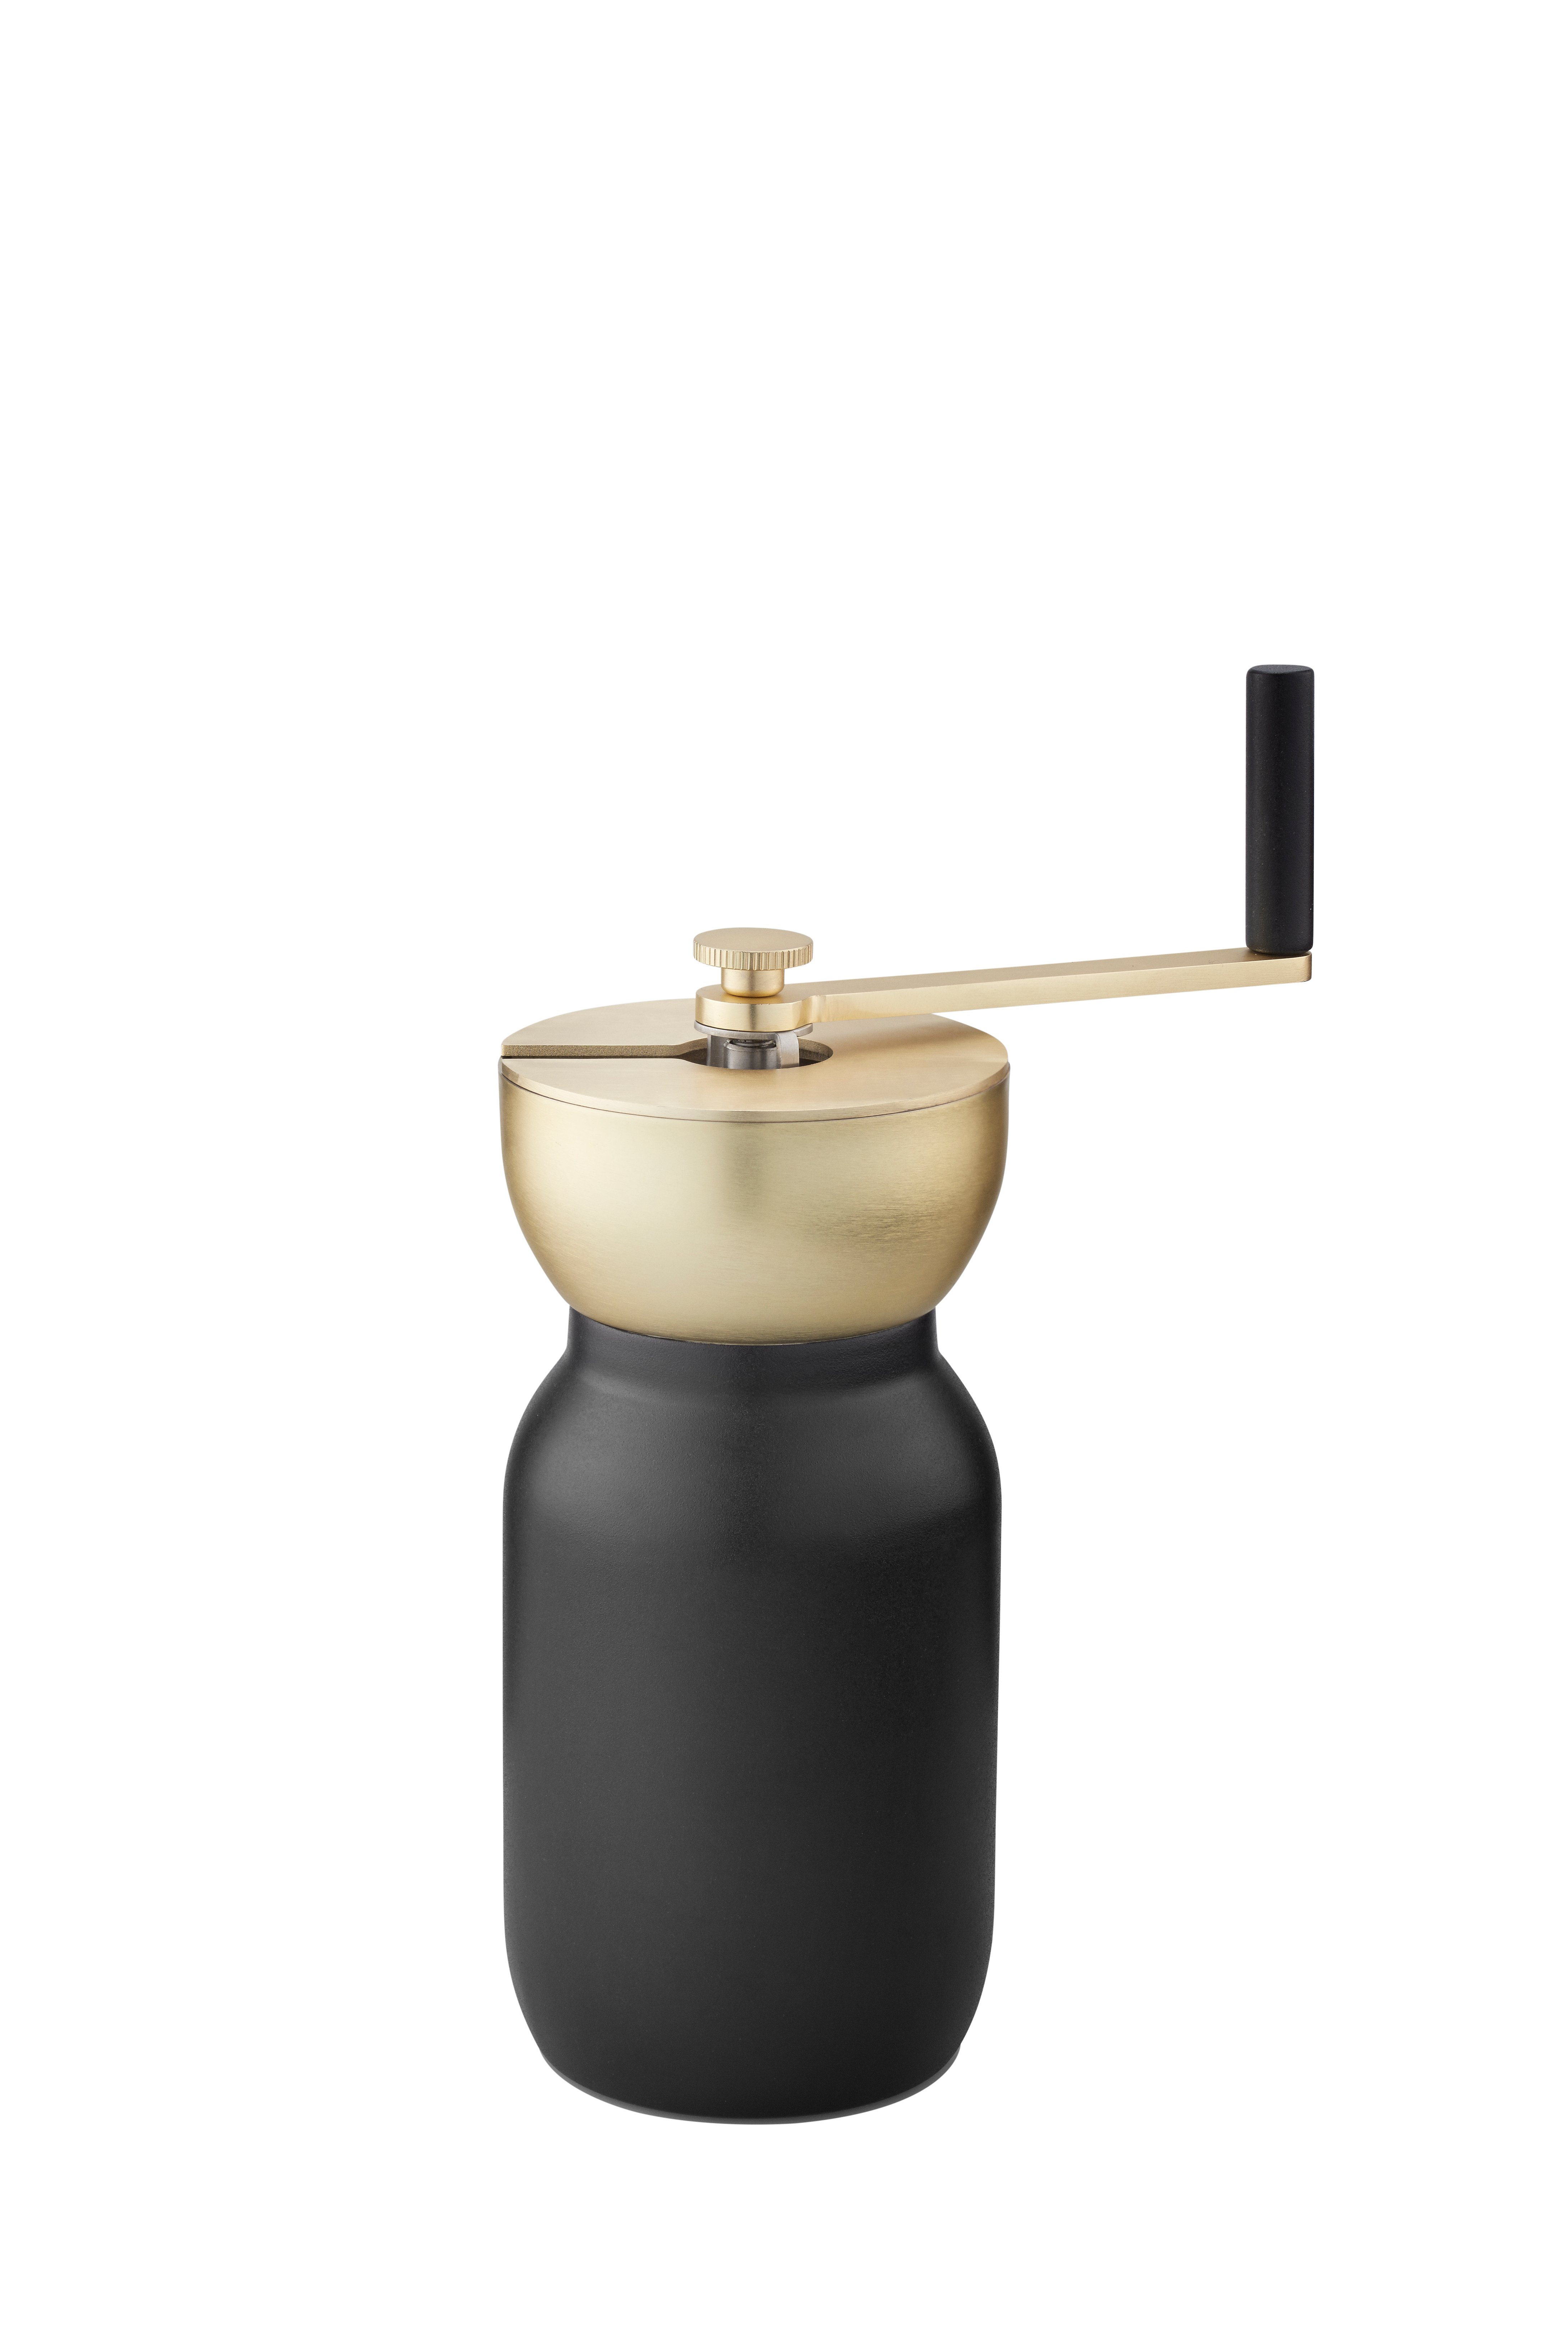 Stelton - Collar Coffee Grinder (423)